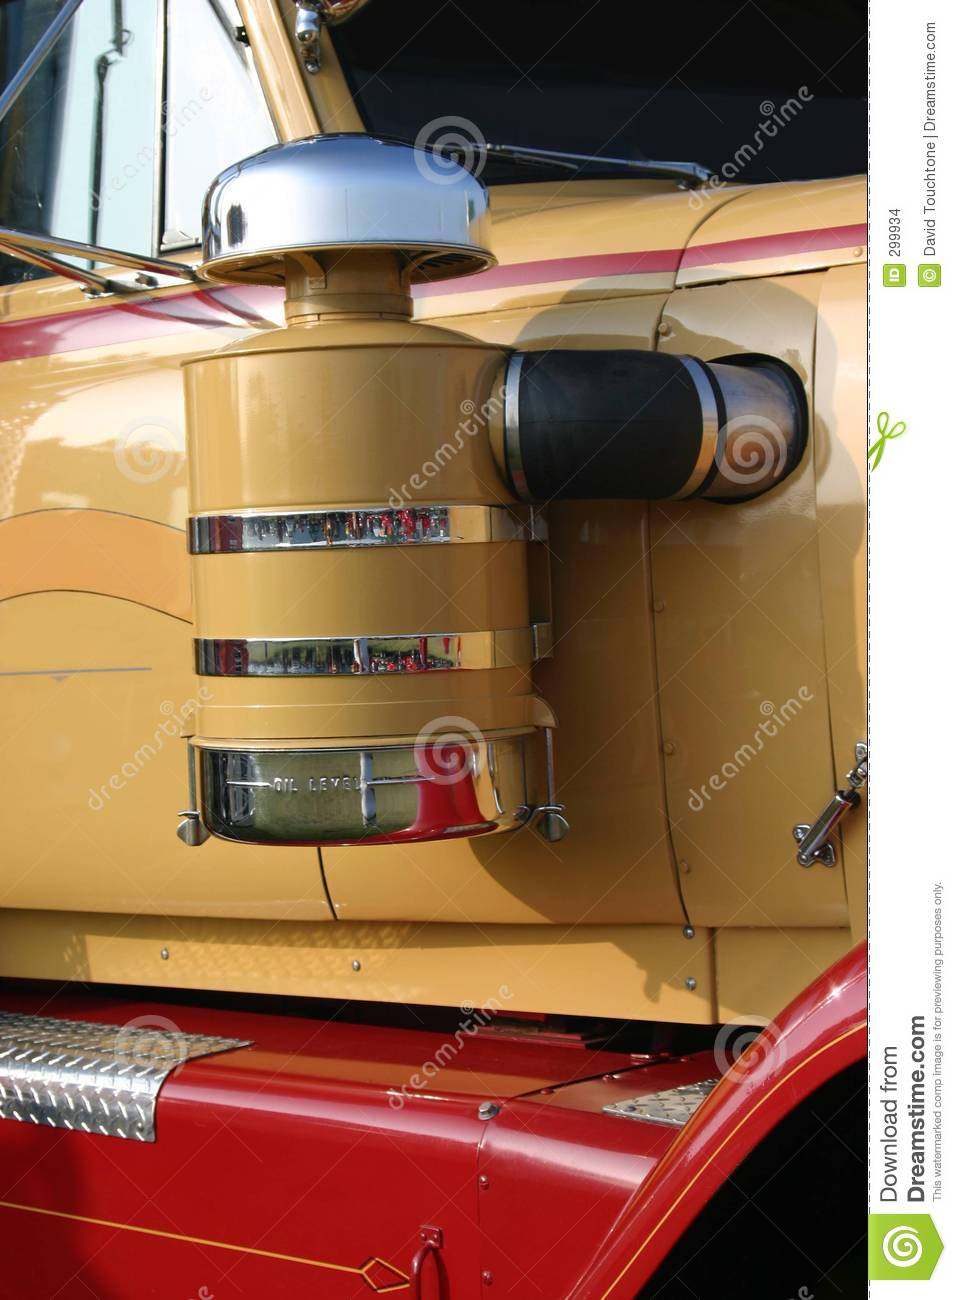 Truck Air Cleaner Stock Images - Image: 299934